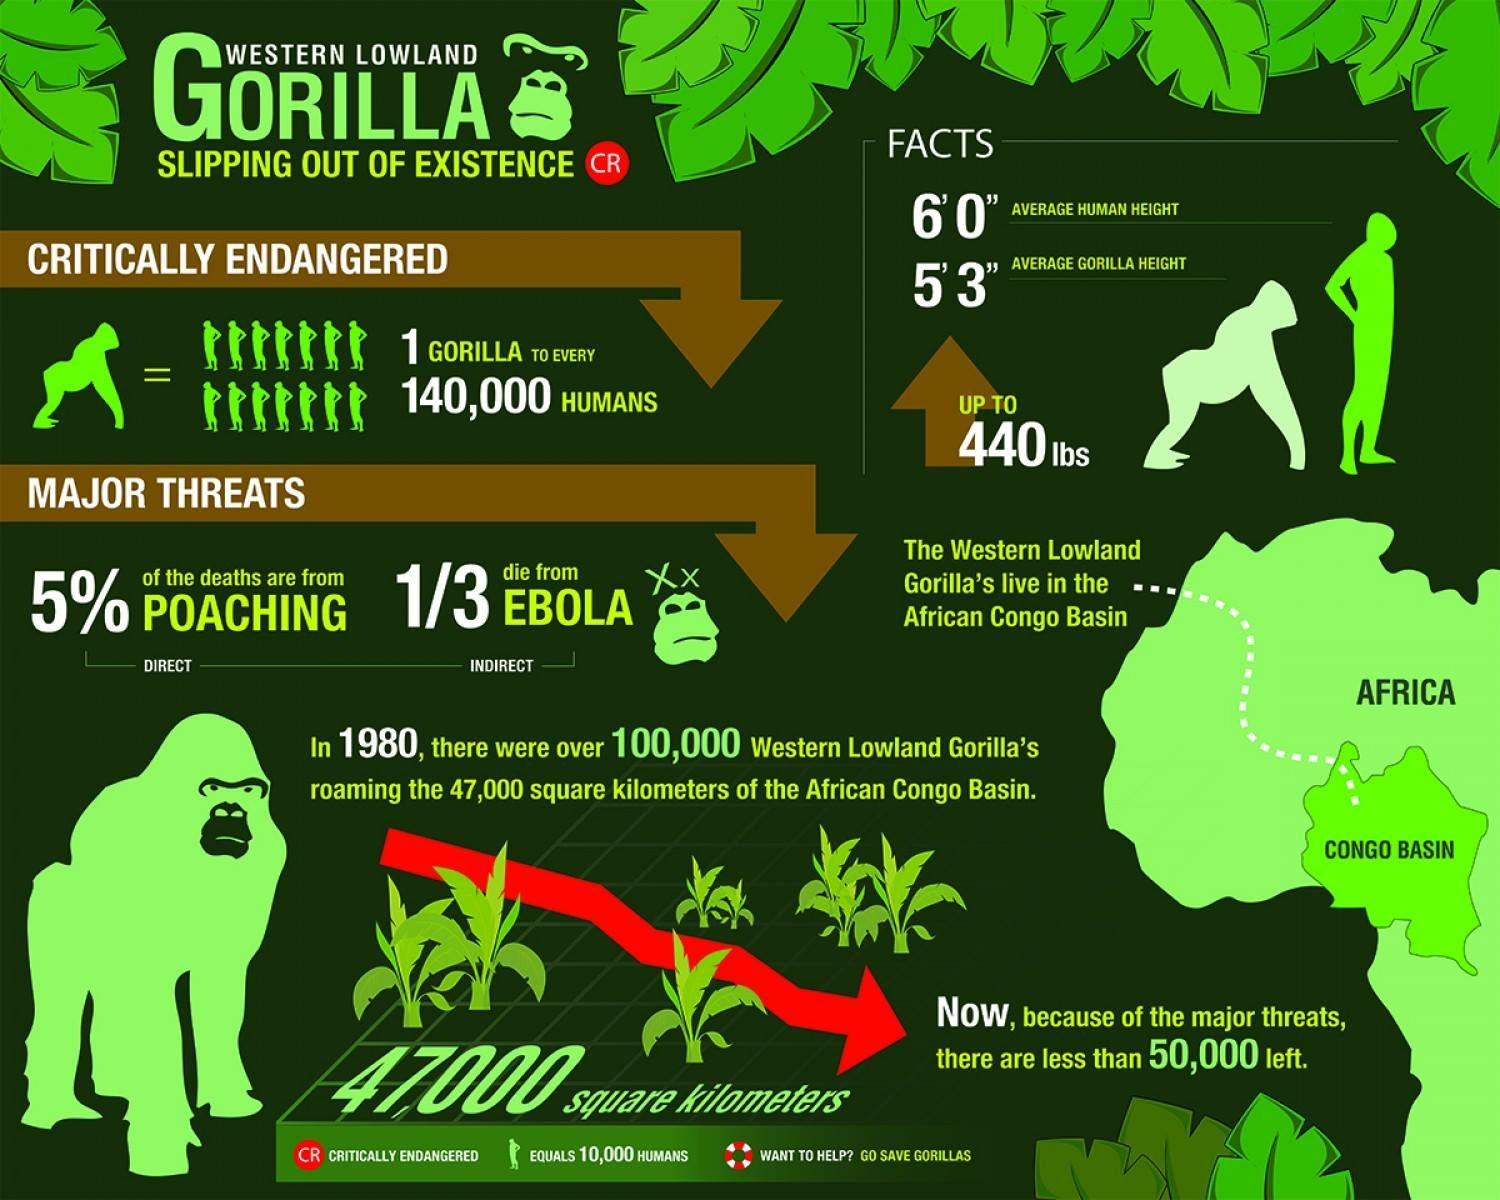 western lowland gorillas slipping out of existence get full